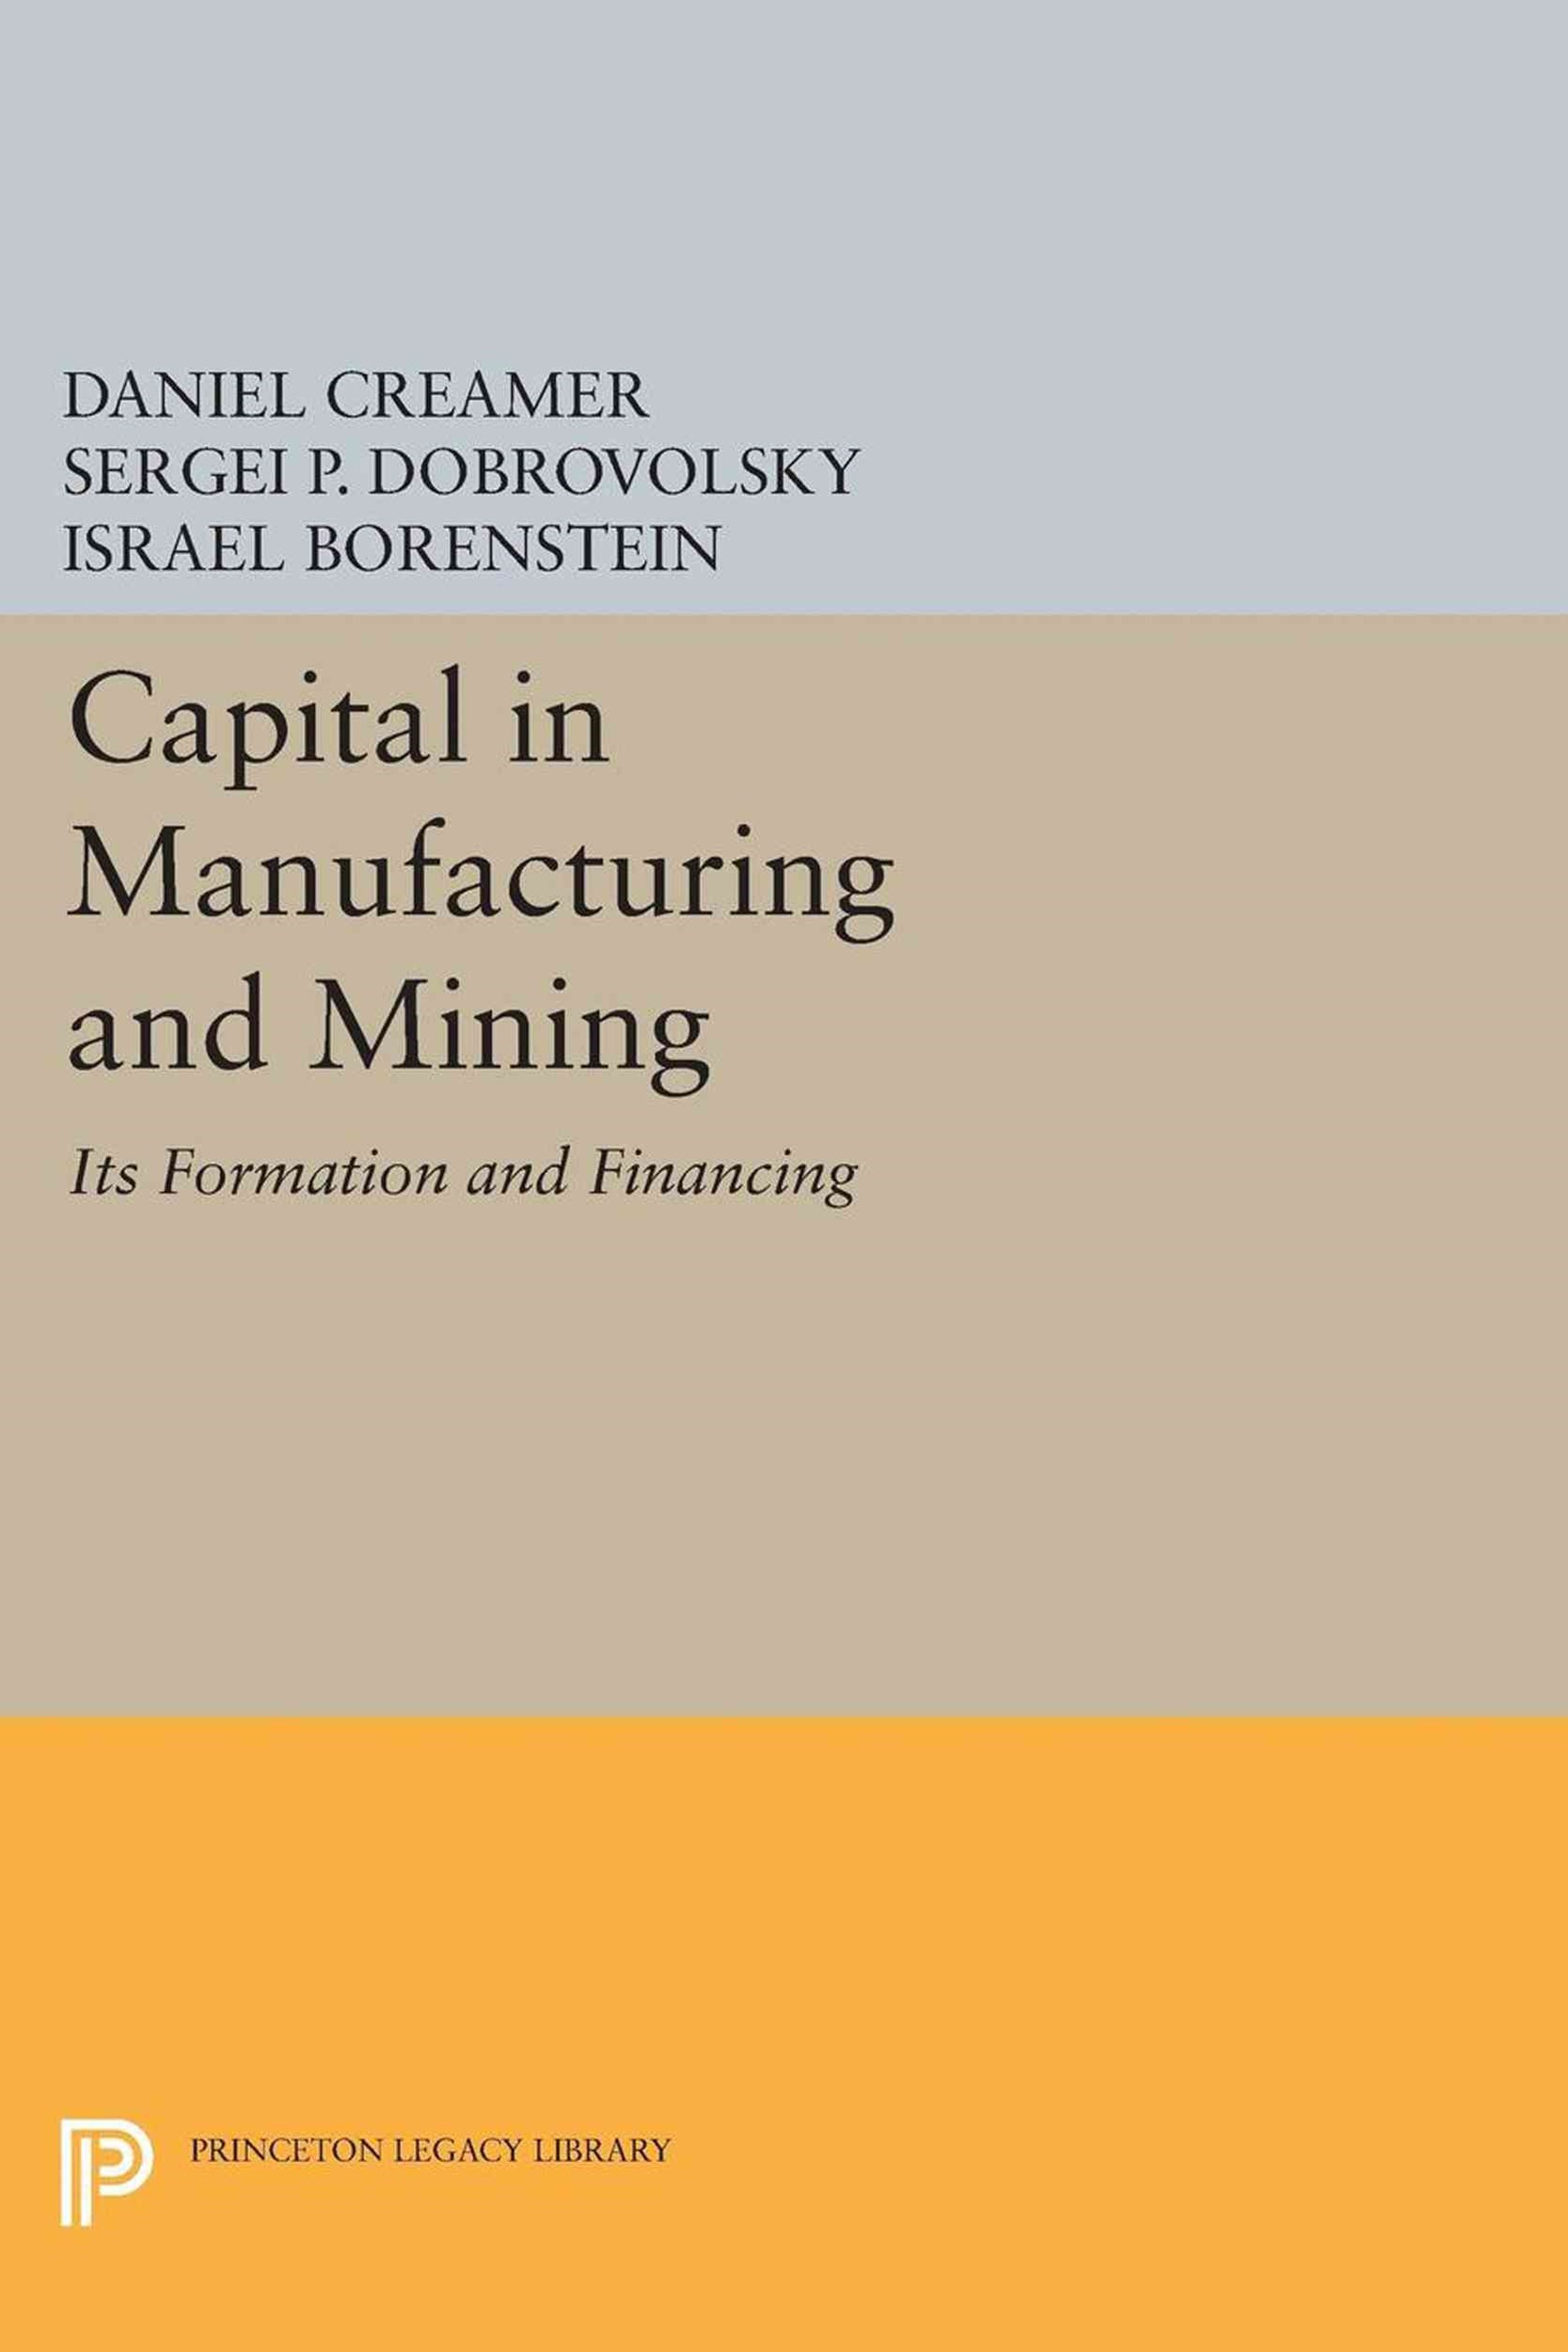 Capital in Manufacturing and Mining